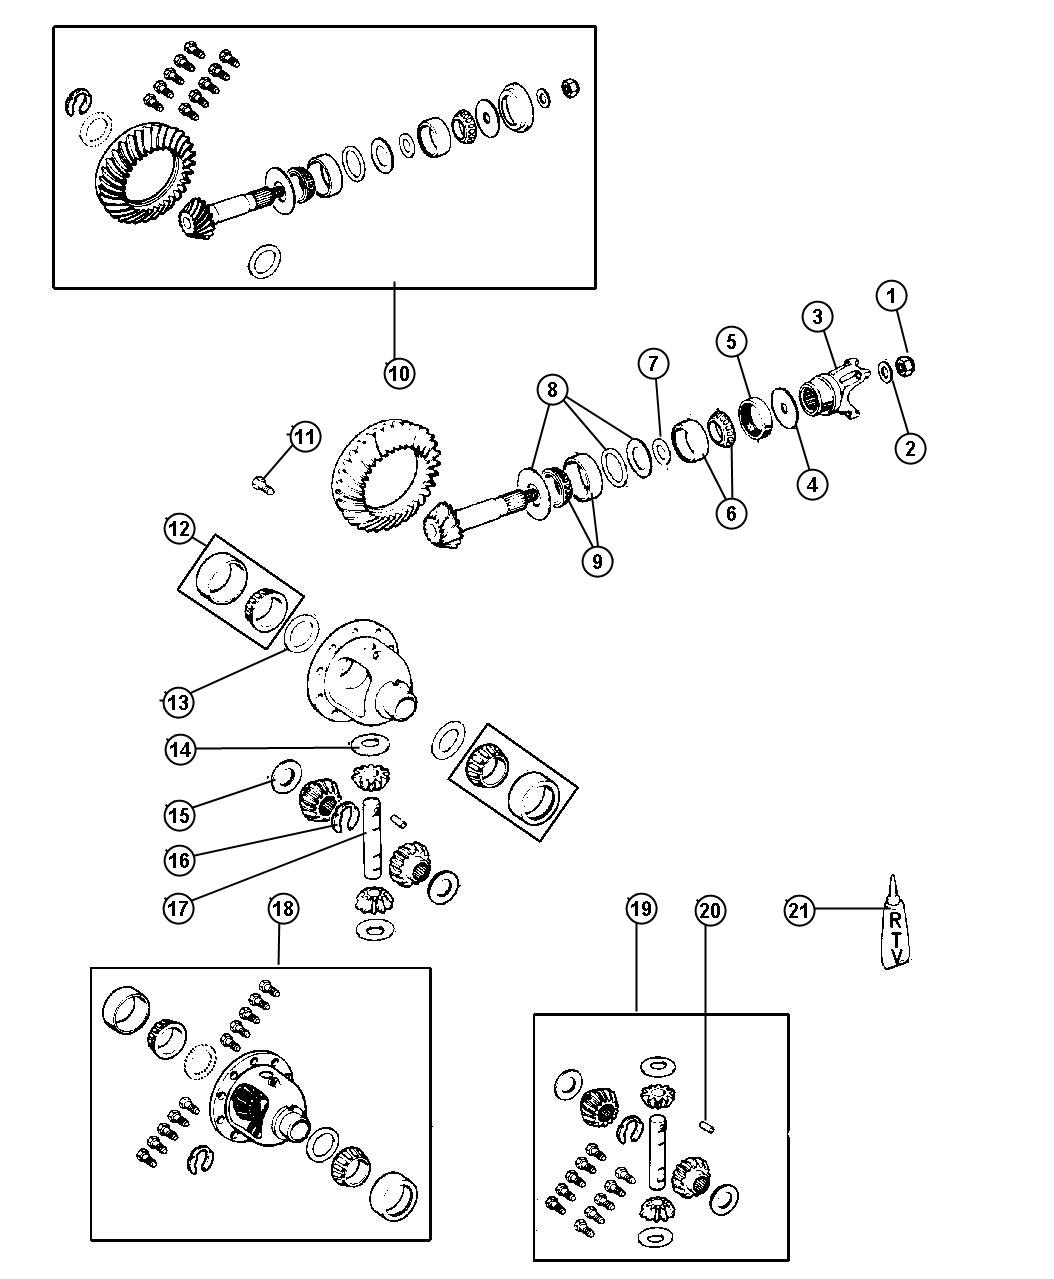 05 jeep wrangler axle diagram  05  free engine image for